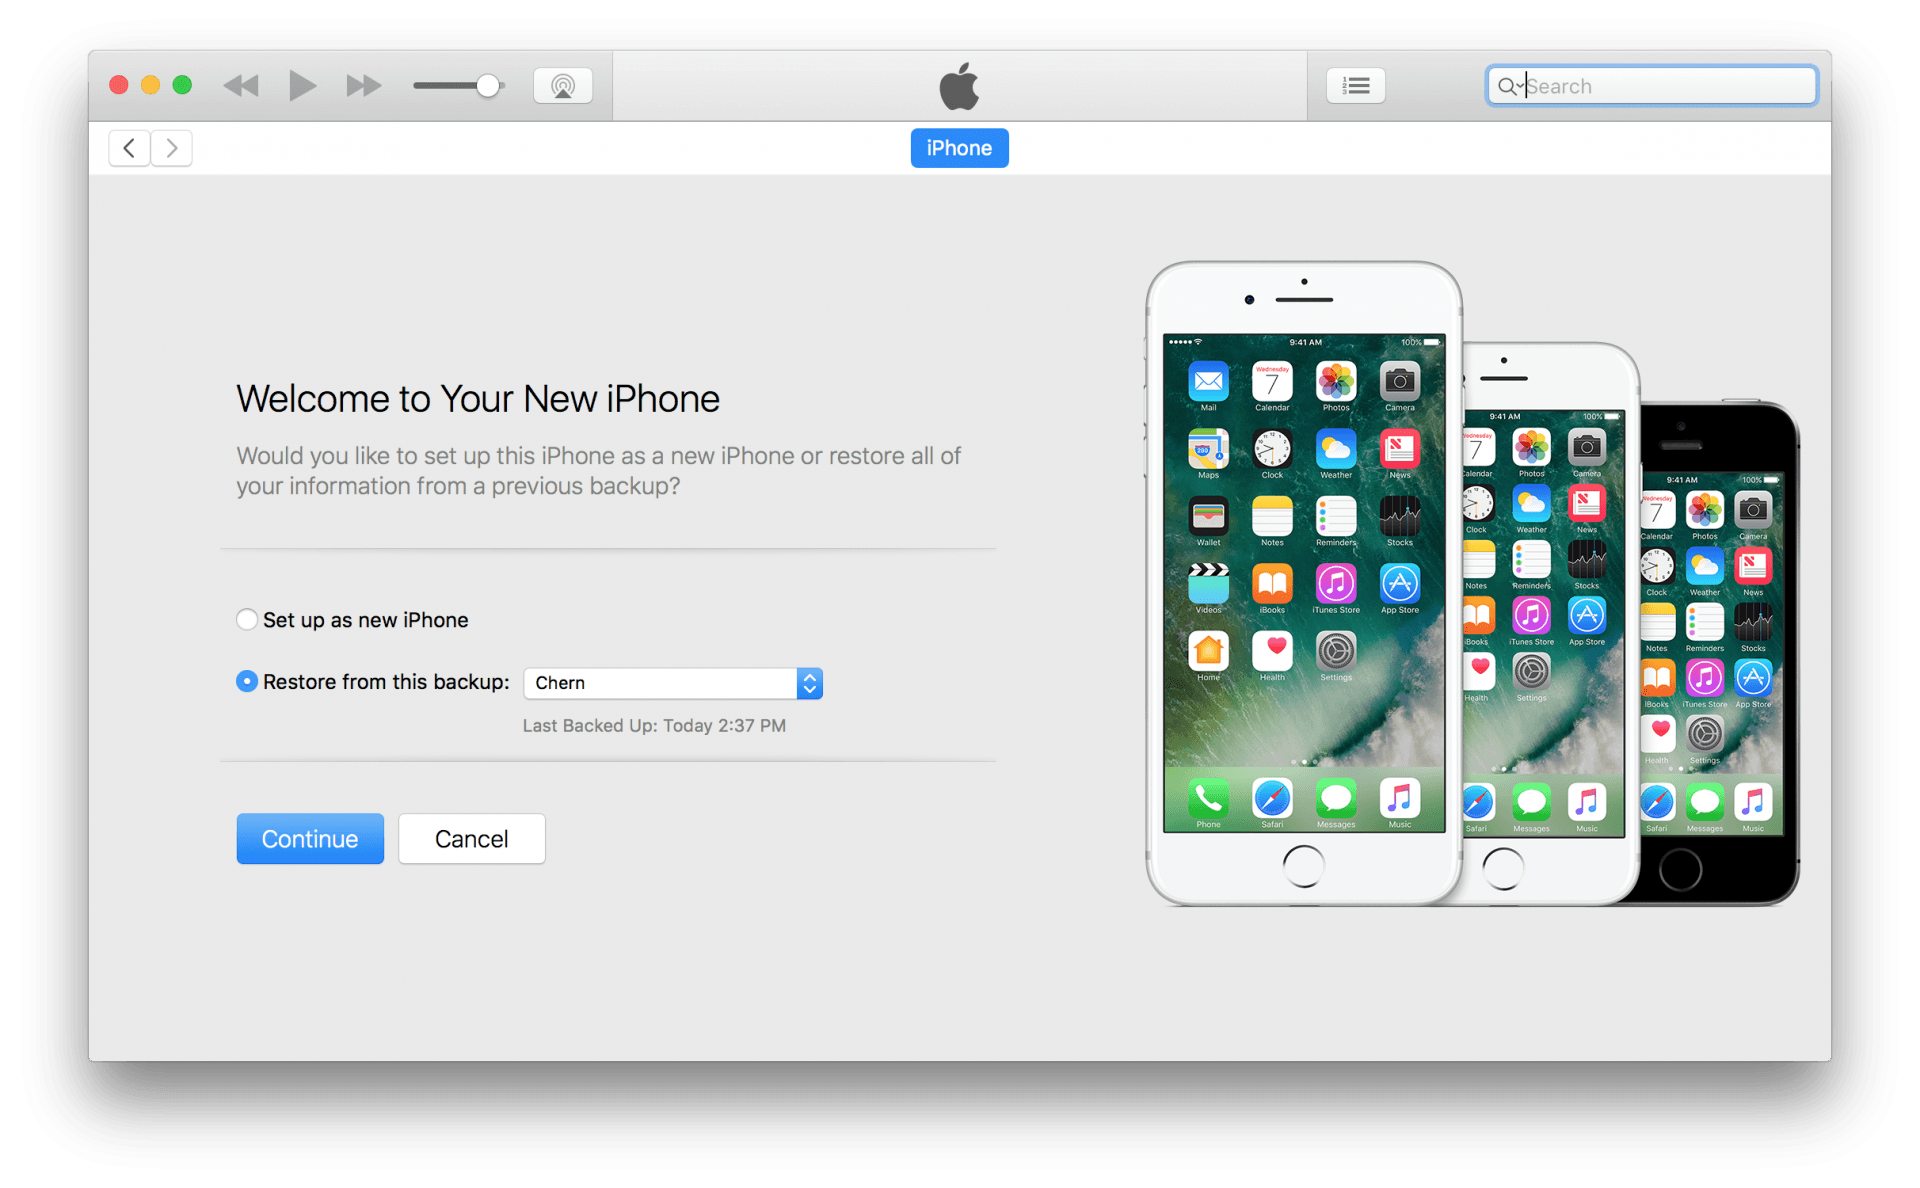 how to reset iphone without itunes and passcode ว ธ ดาวน เกรด iphone จาก ios 10 กล บไปย ง ios 9 3 5 20974